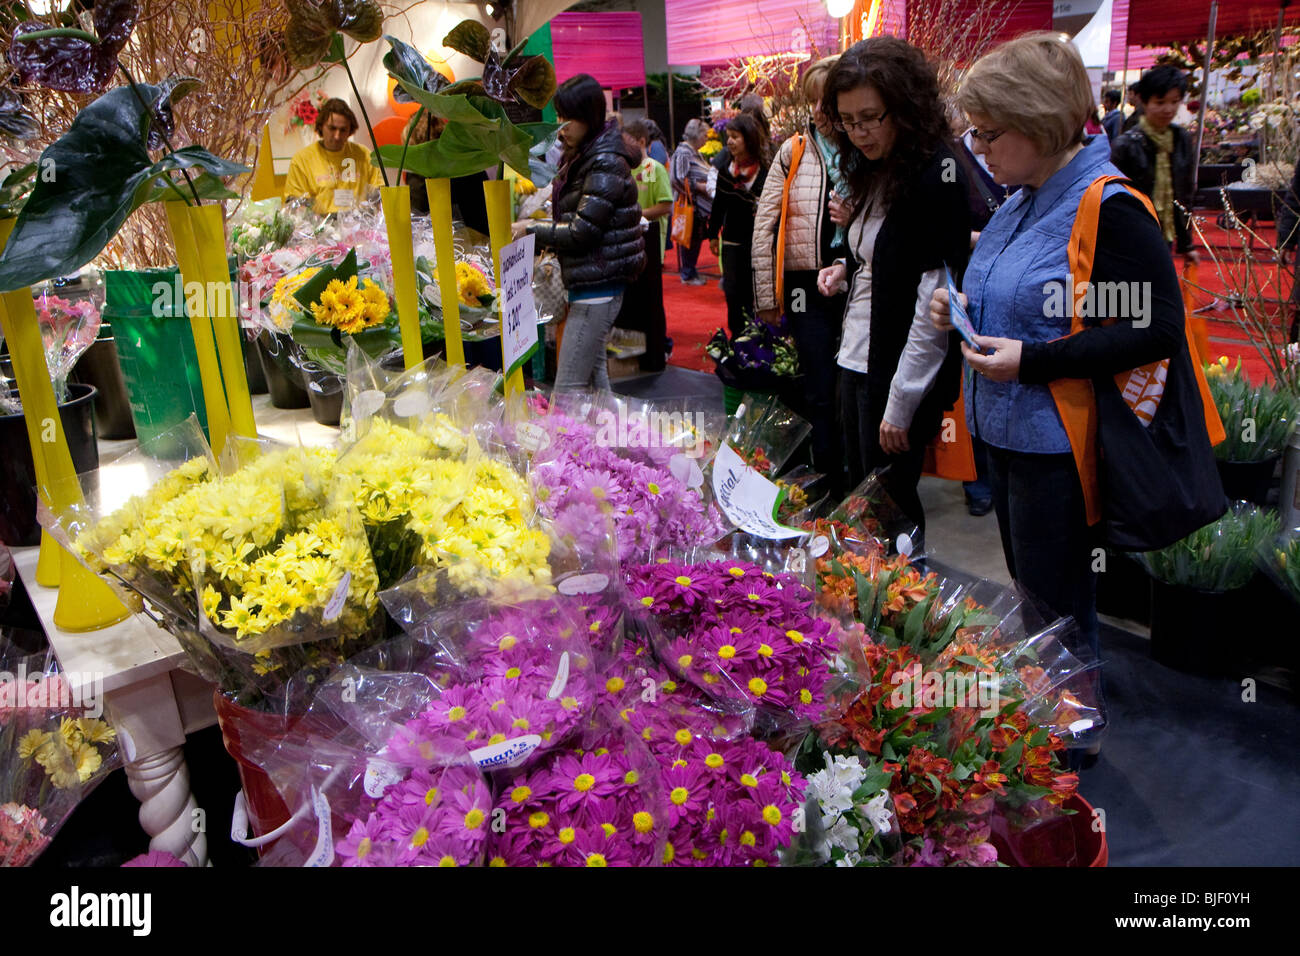 Canada bloom buyers event flower garden shoppers show gerbera yellow purple red white - Stock Image